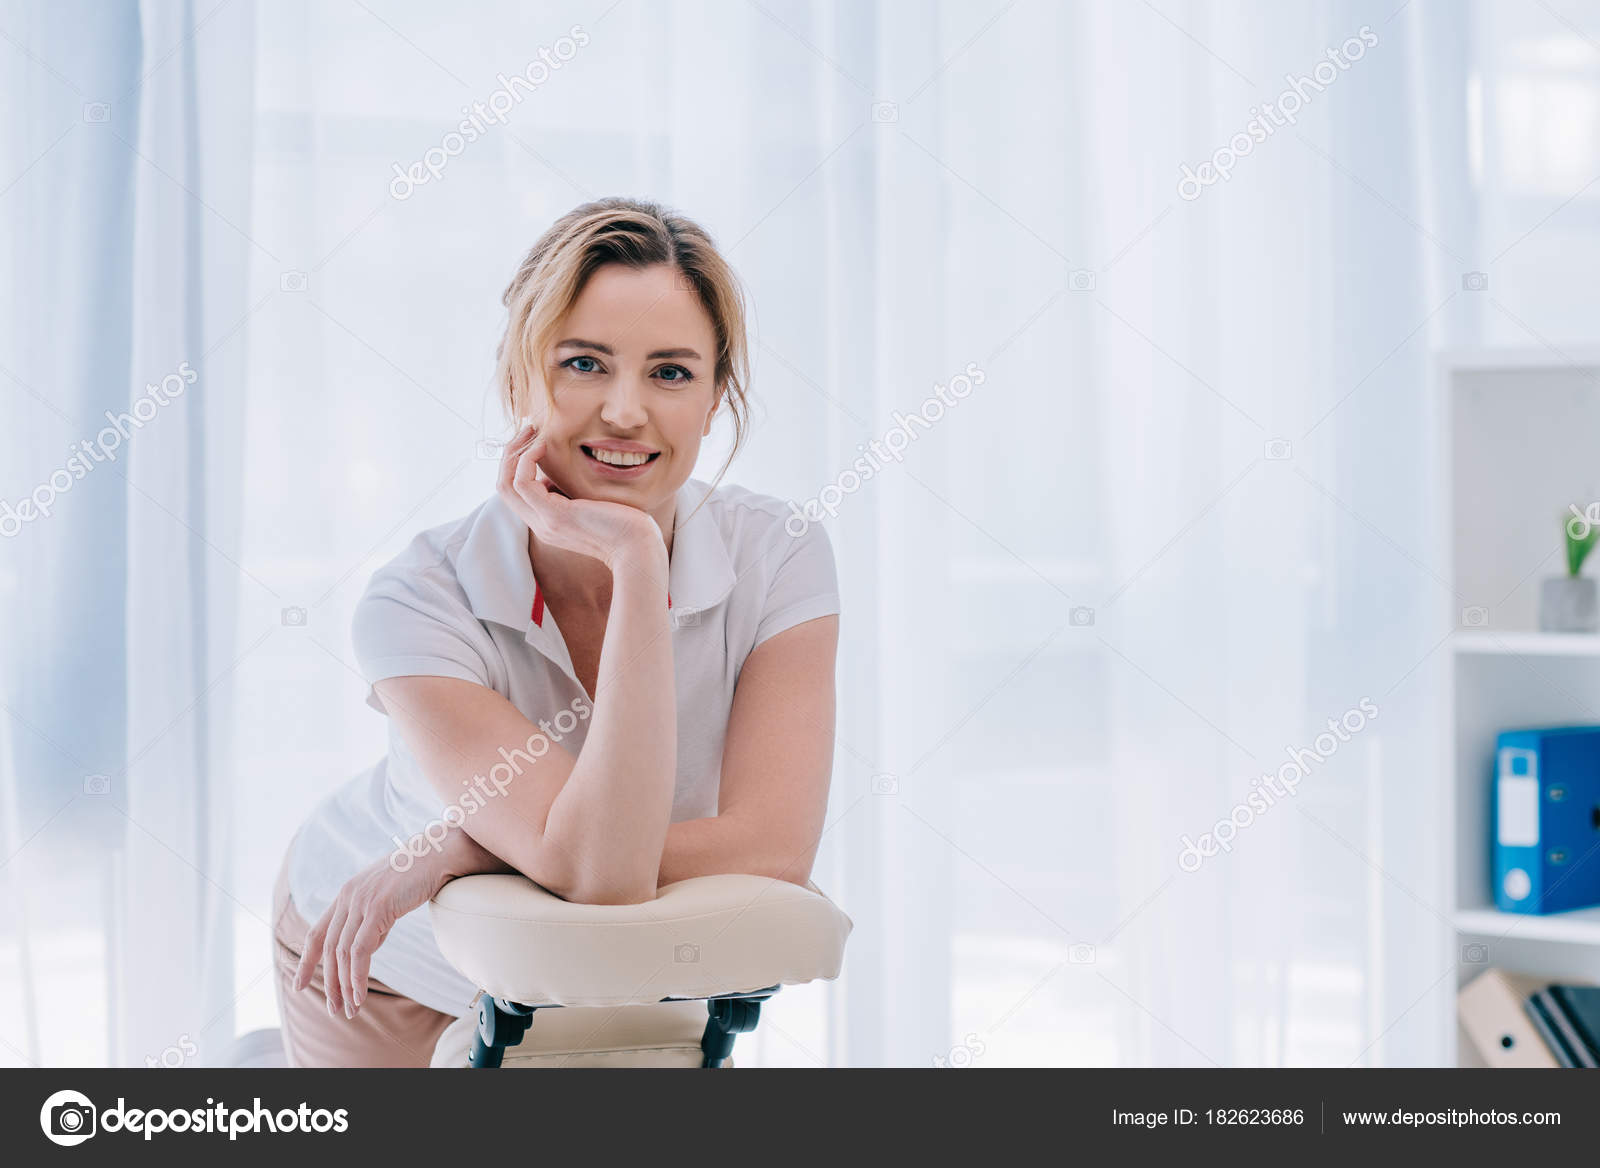 Happy Massage Therapist Leaning Chair Seated Massage u2014 Stock Photo  sc 1 st  Depositphotos & Happy Massage Therapist Leaning Chair Seated Massage u2014 Stock Photo ...